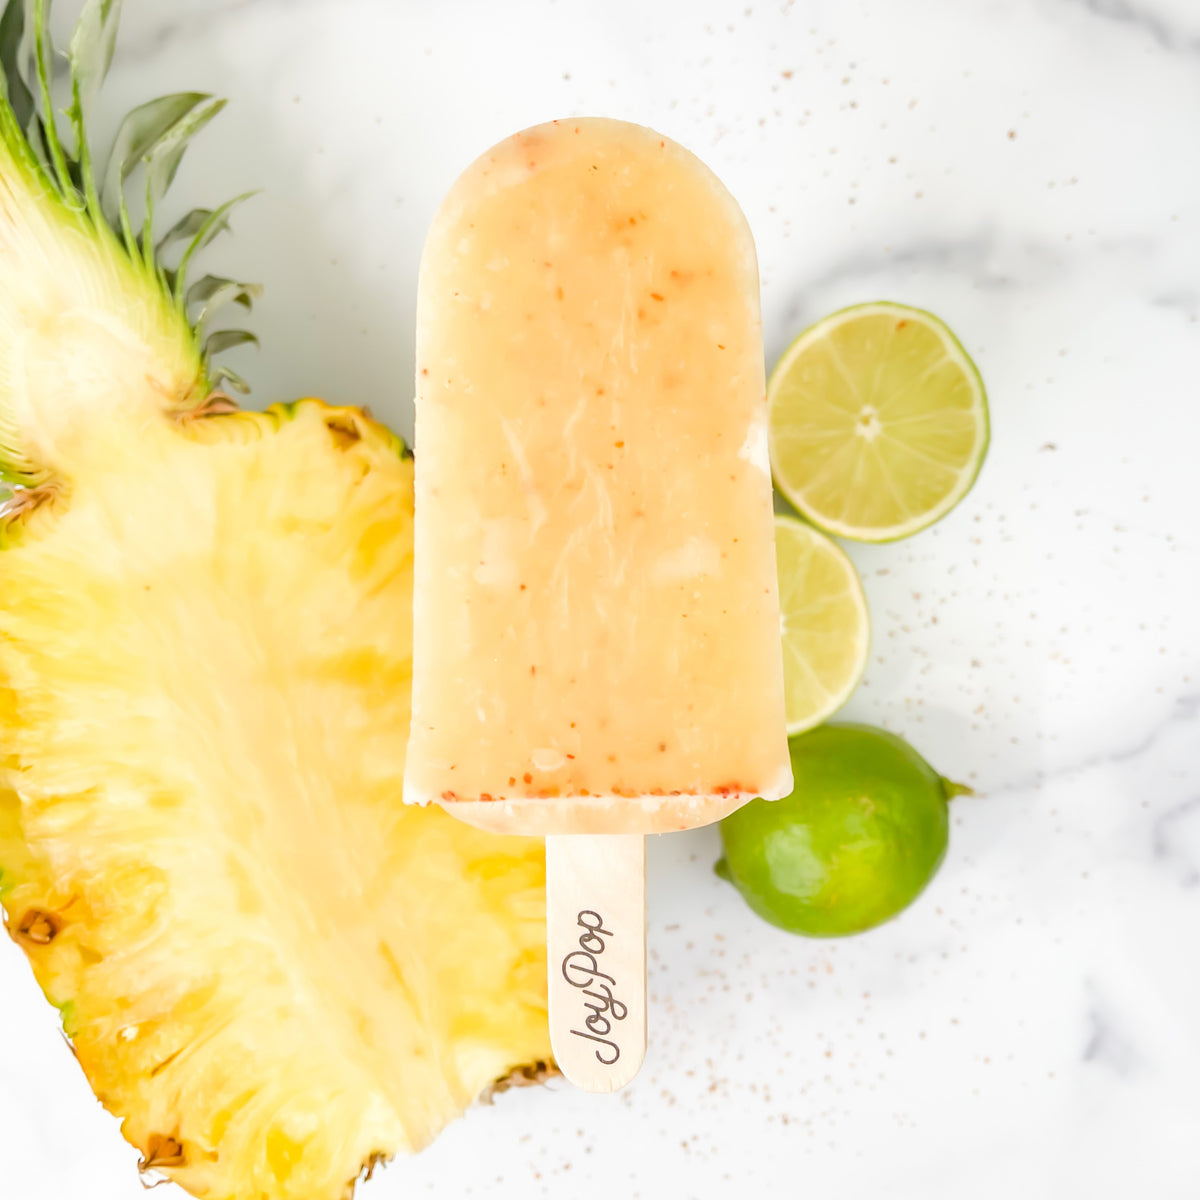 Pineapple Chili Lime Frozen Pop by The Joy Pop Co next to a whole lime and cut limes and a half pineapple and chili spices scattered on a white marble background